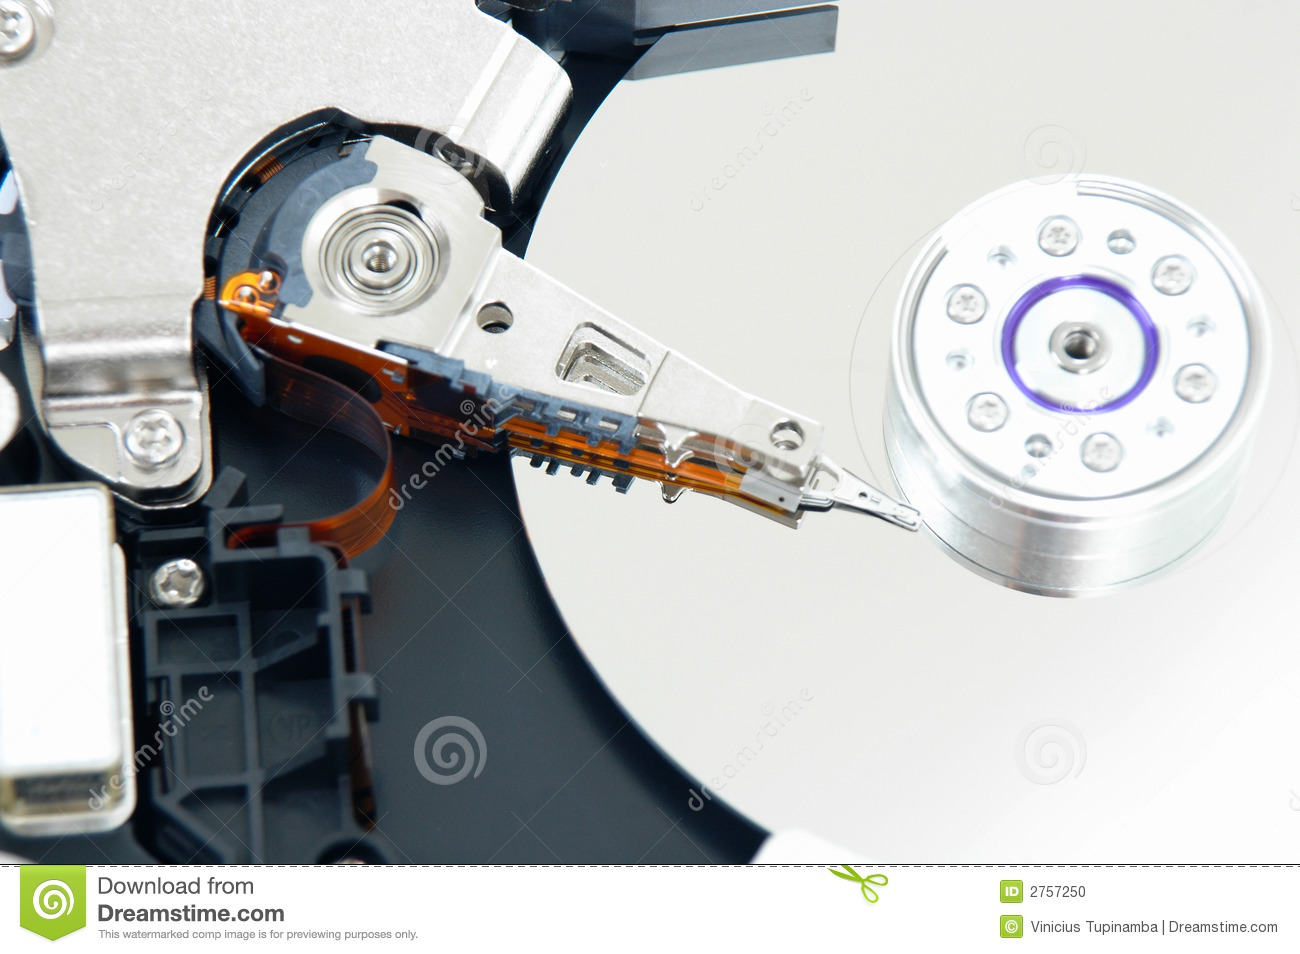 how to read a hard drive on another computer